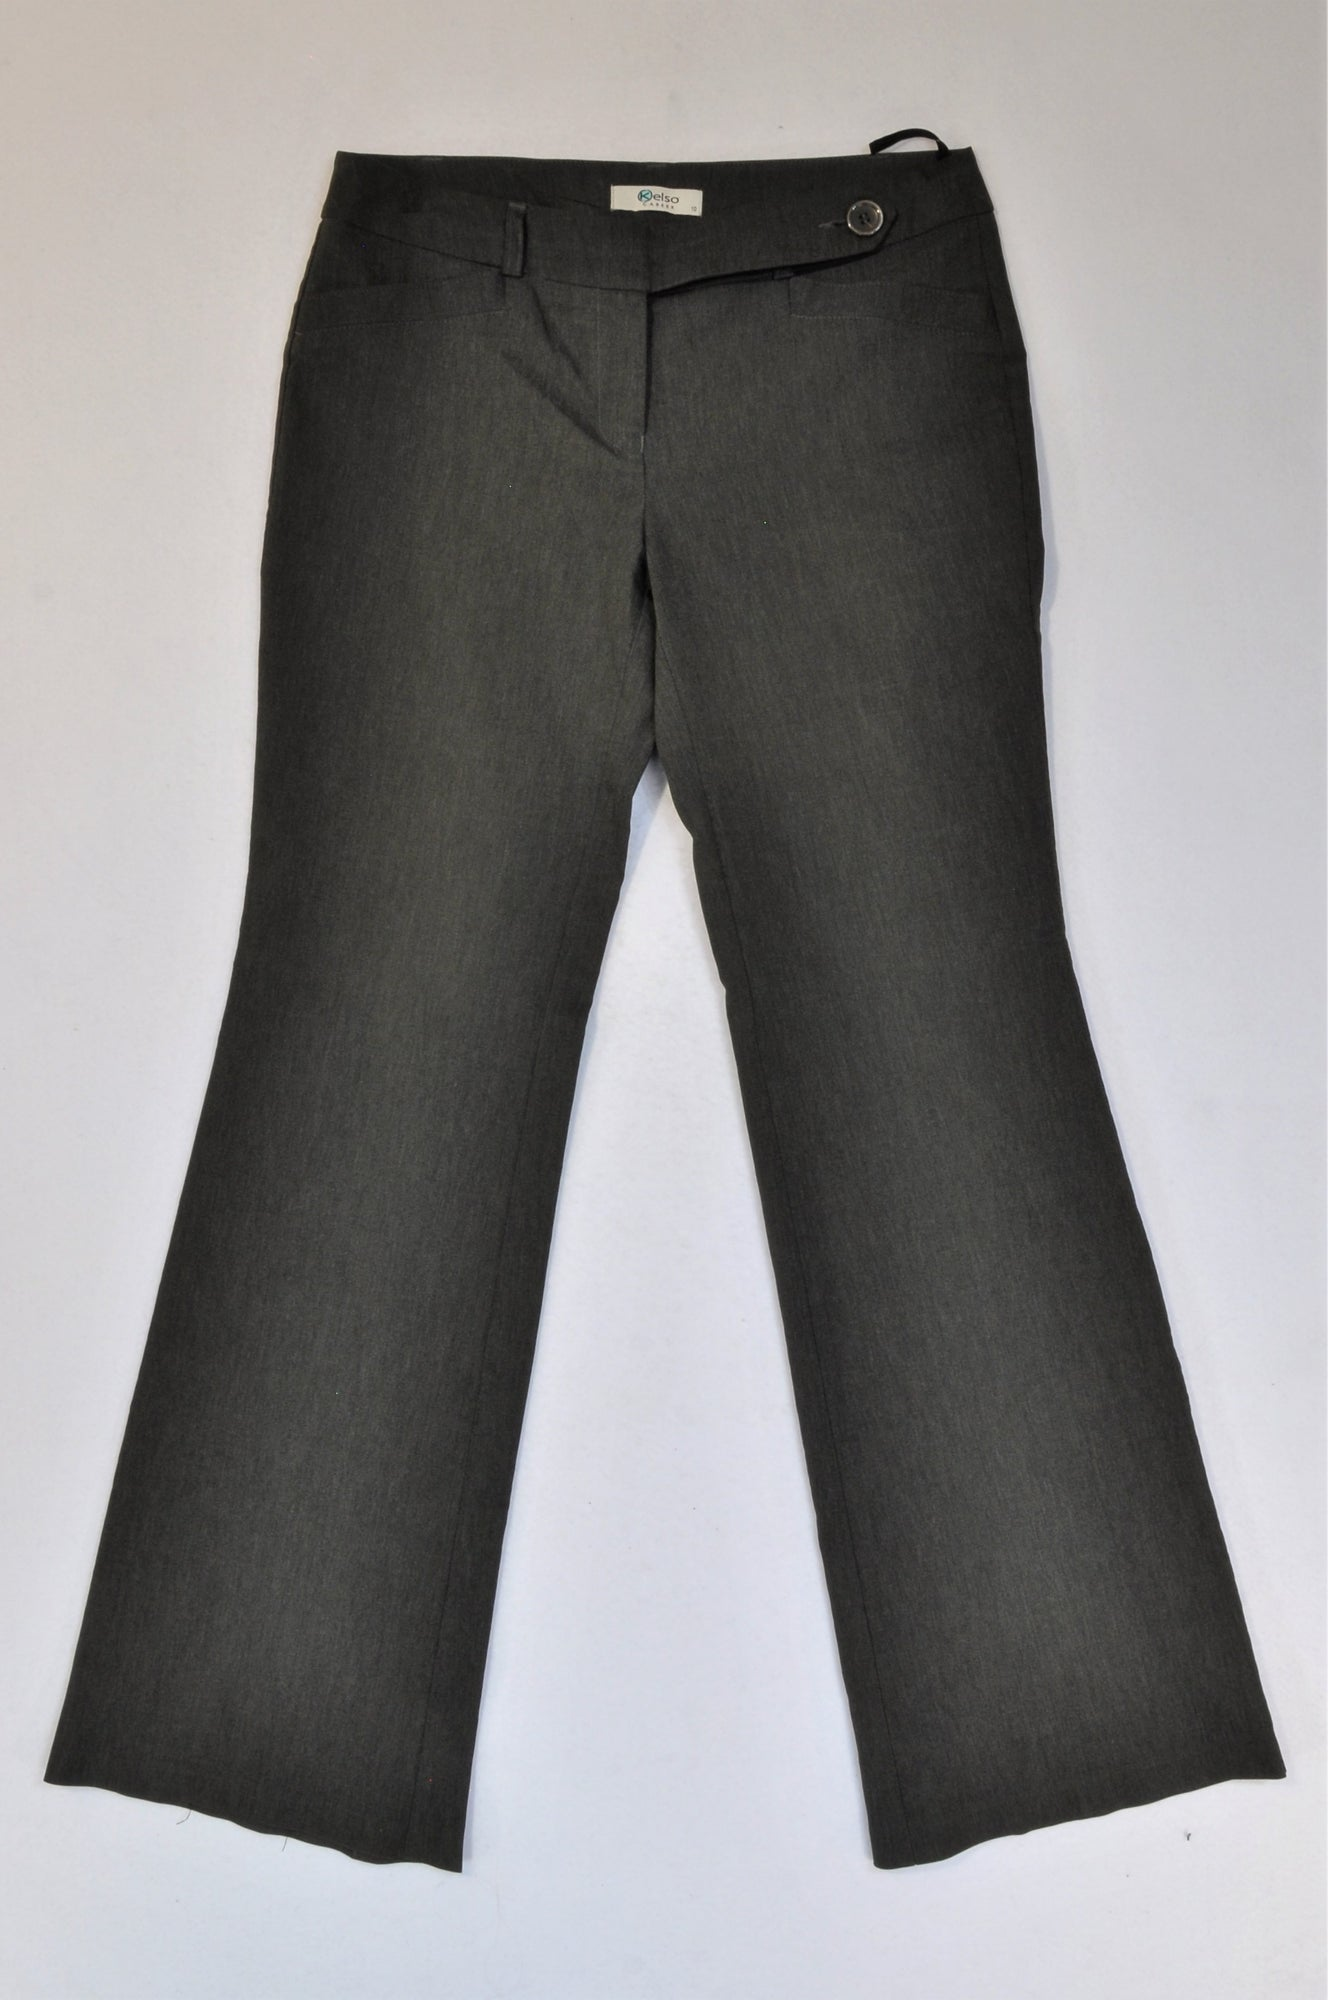 Kelso Charcoal Flare Office Pants Women Size 10